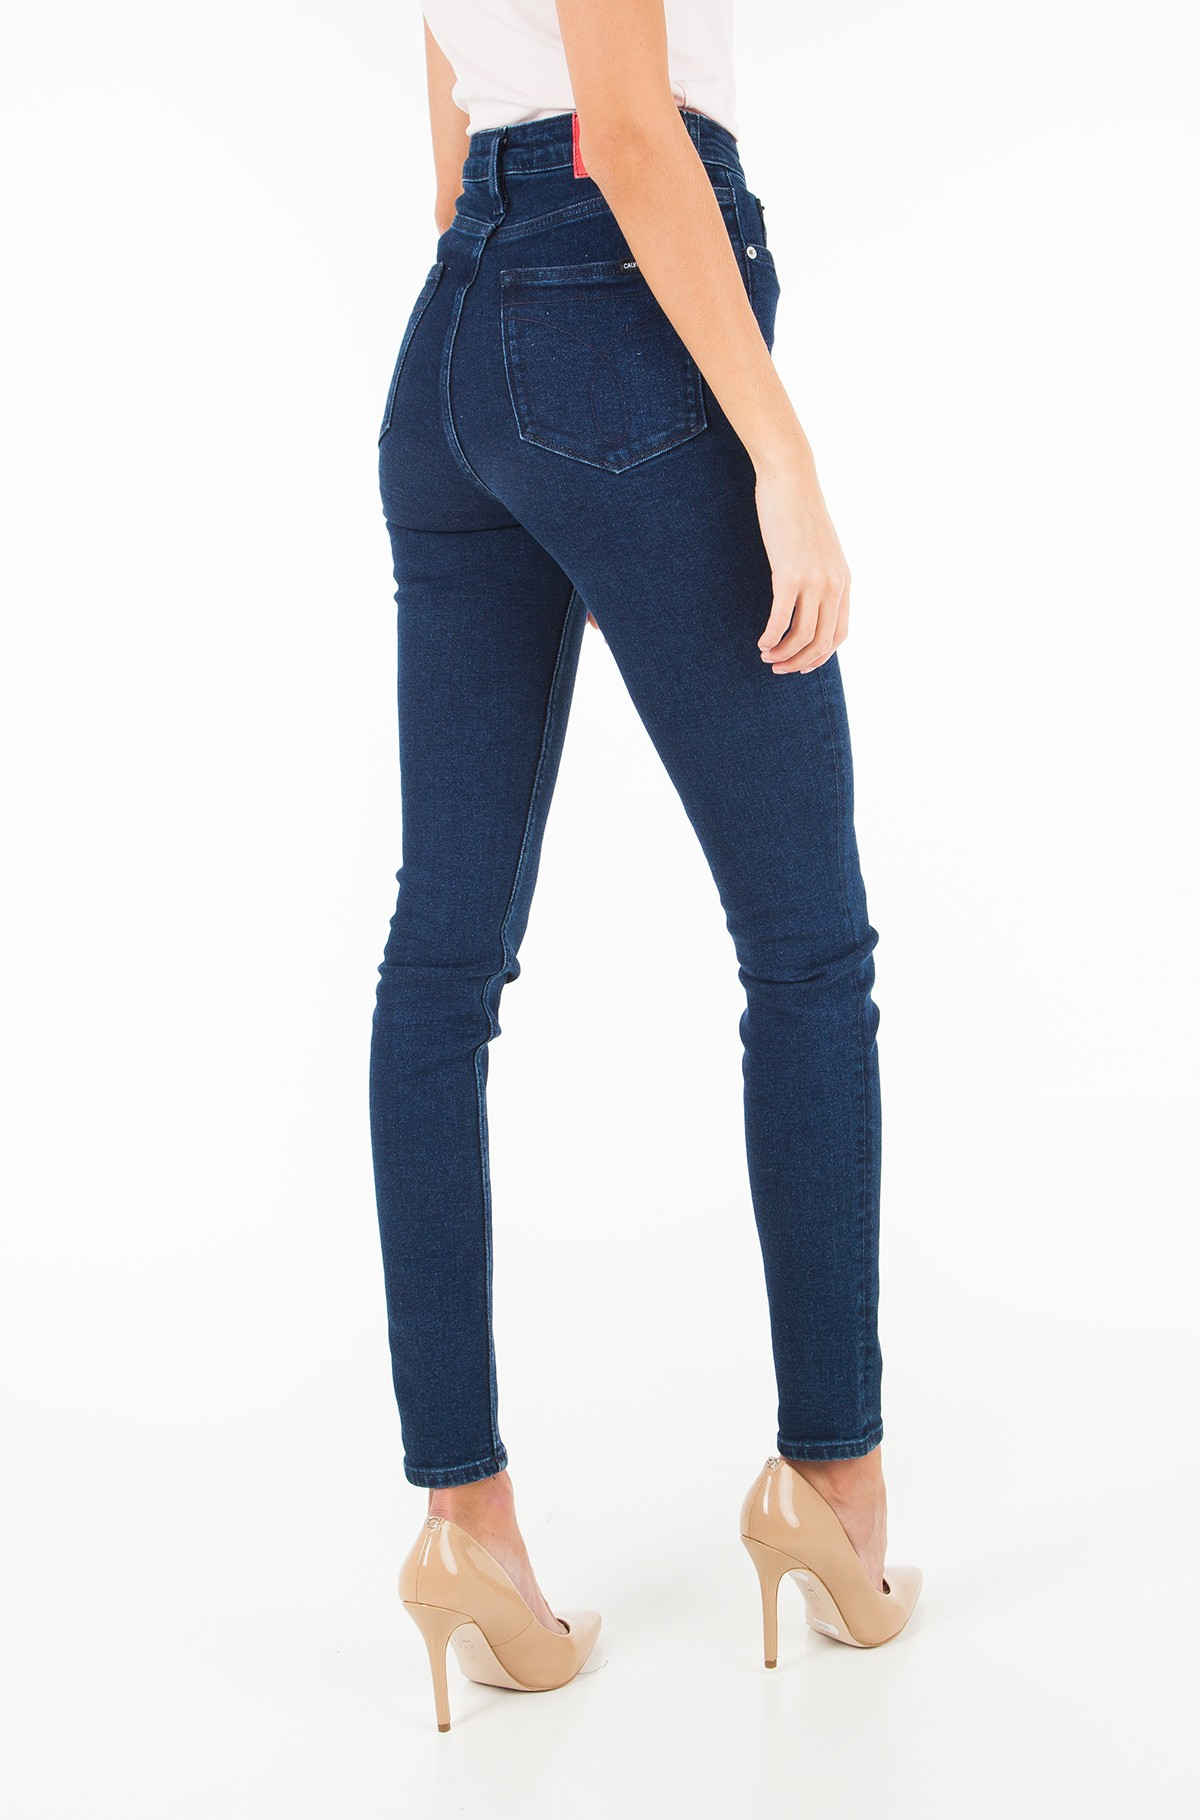 Džinsinės kelnės CKJ 010: High Rise Skinny West - Sanoma Blue	-full-2